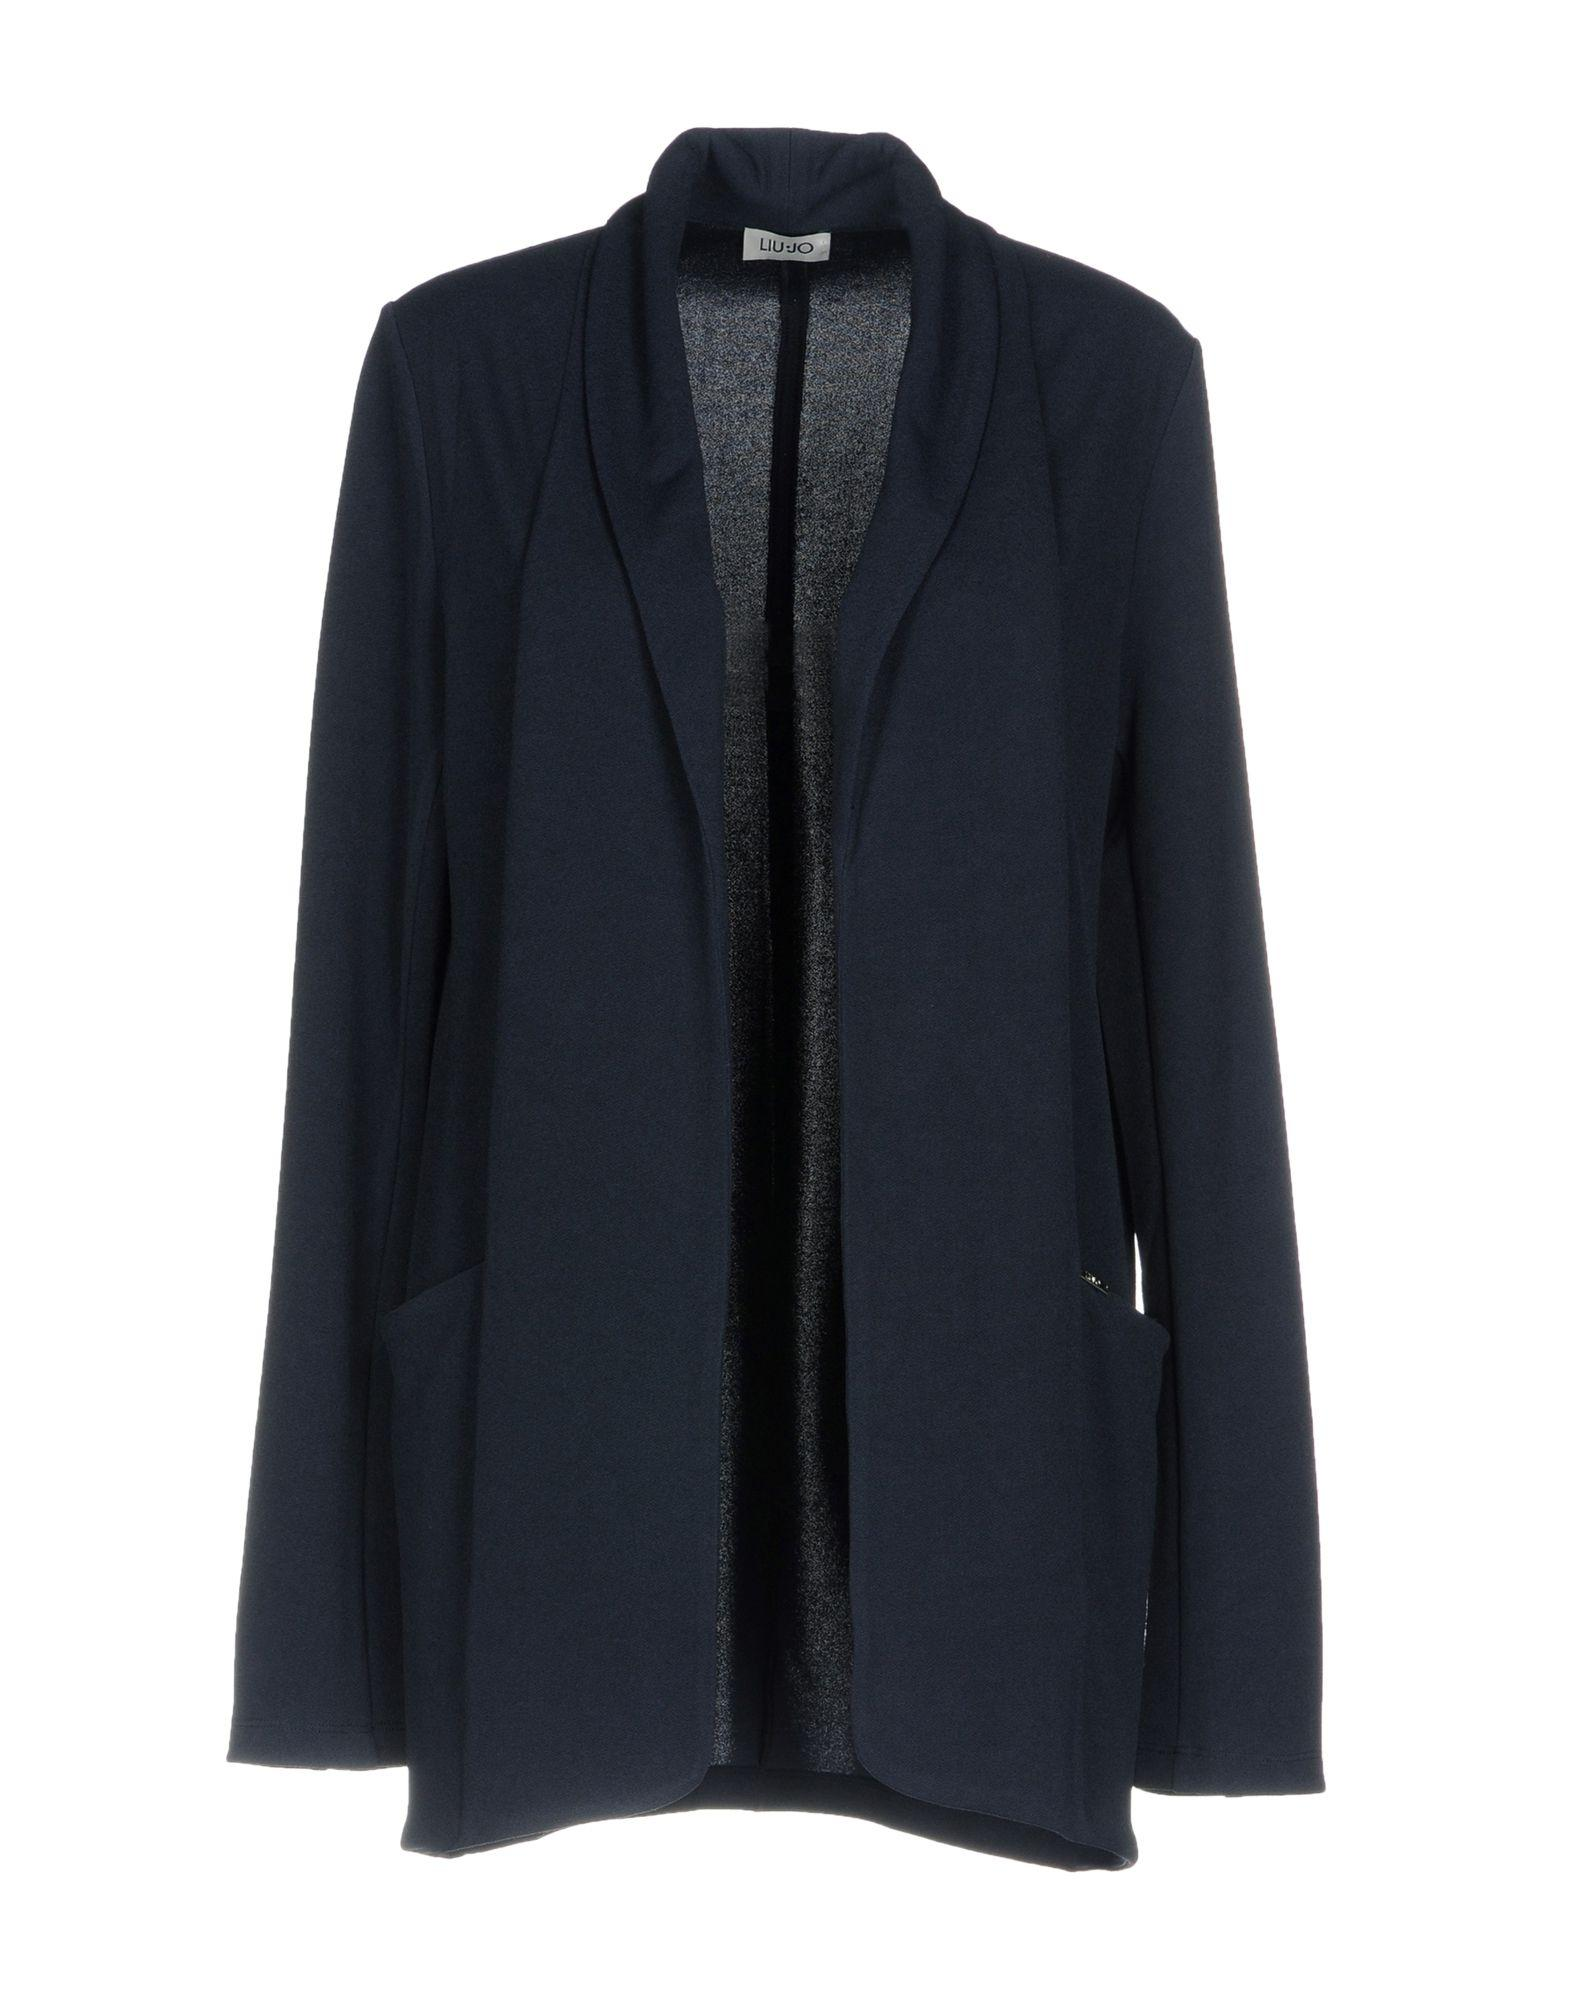 Liu •jo Cardigan In Dark Blue